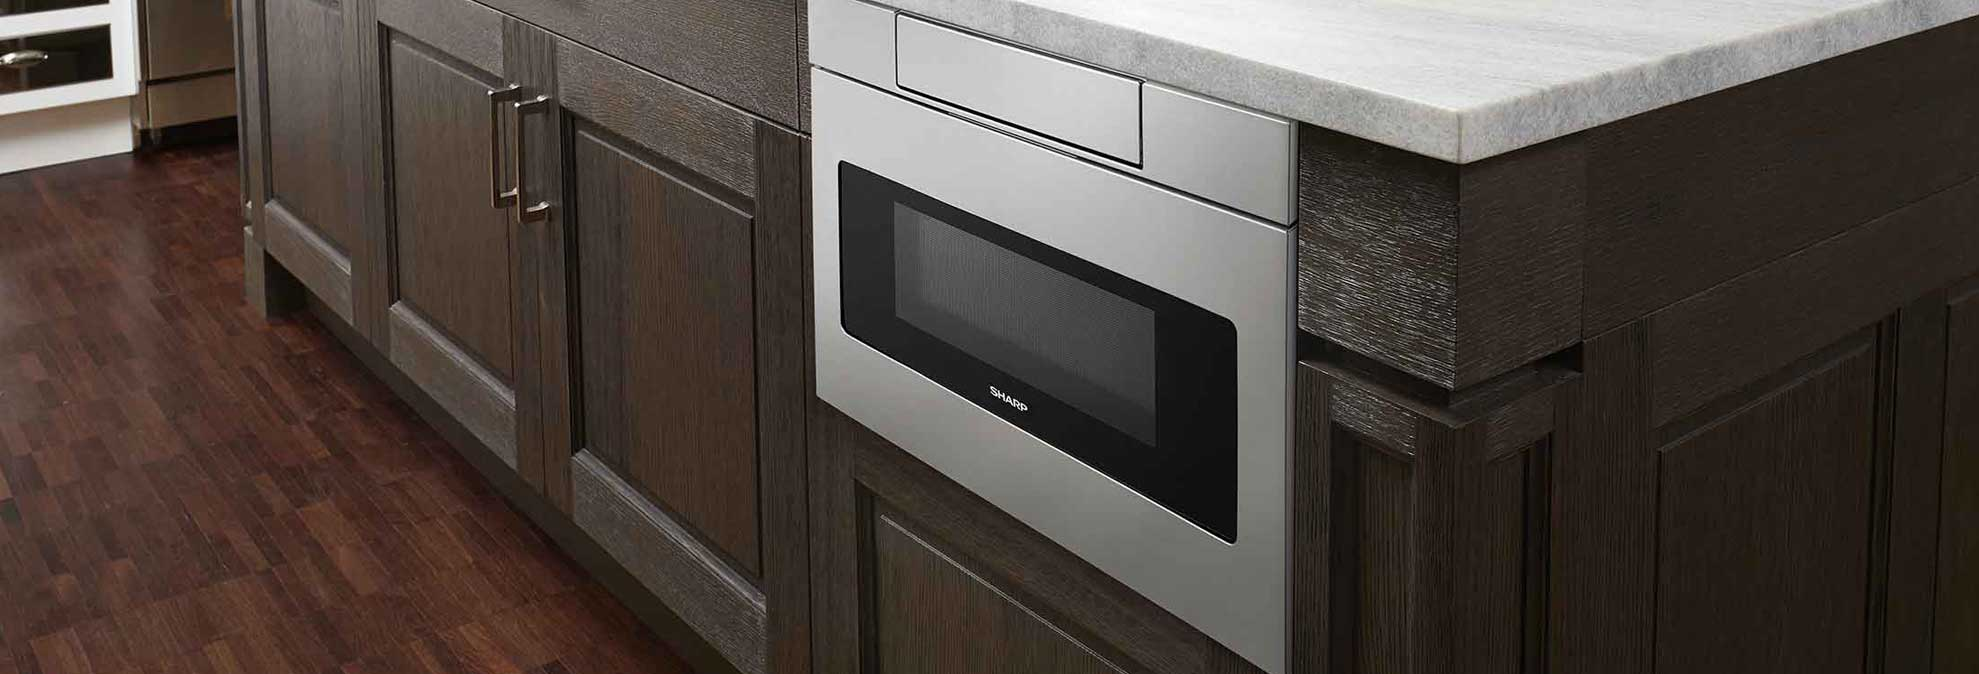 awesome Highest Rated Kitchen Appliances #8: Consumer Reports